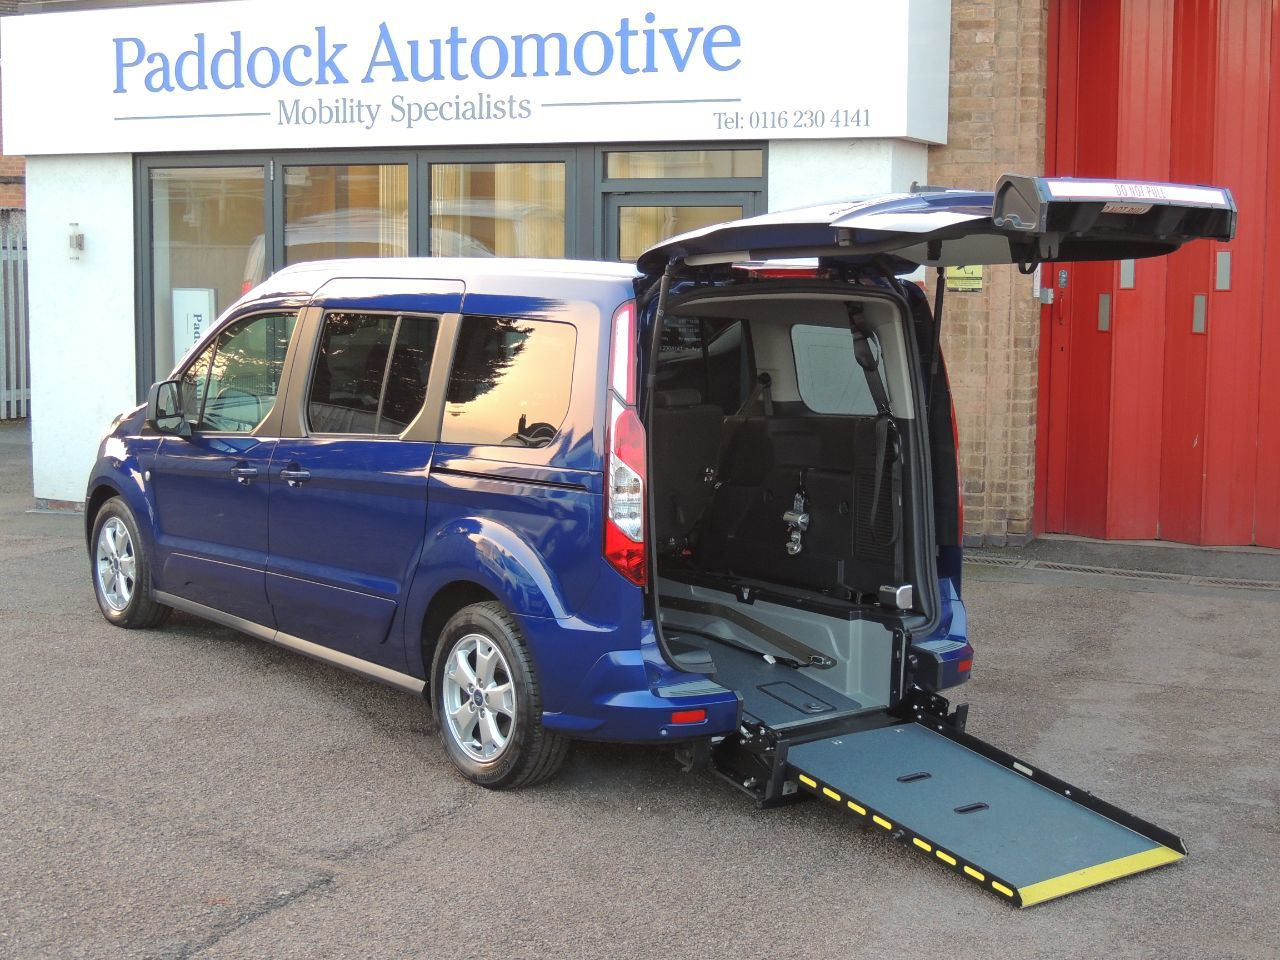 Ford Grand Tourneo Connect 1.5 TDCi 120 Titanium Powershift Disabled Wheelchair Adapted Vehicle WAV Wheelchair Adapted Diesel Chrome Blue Mica